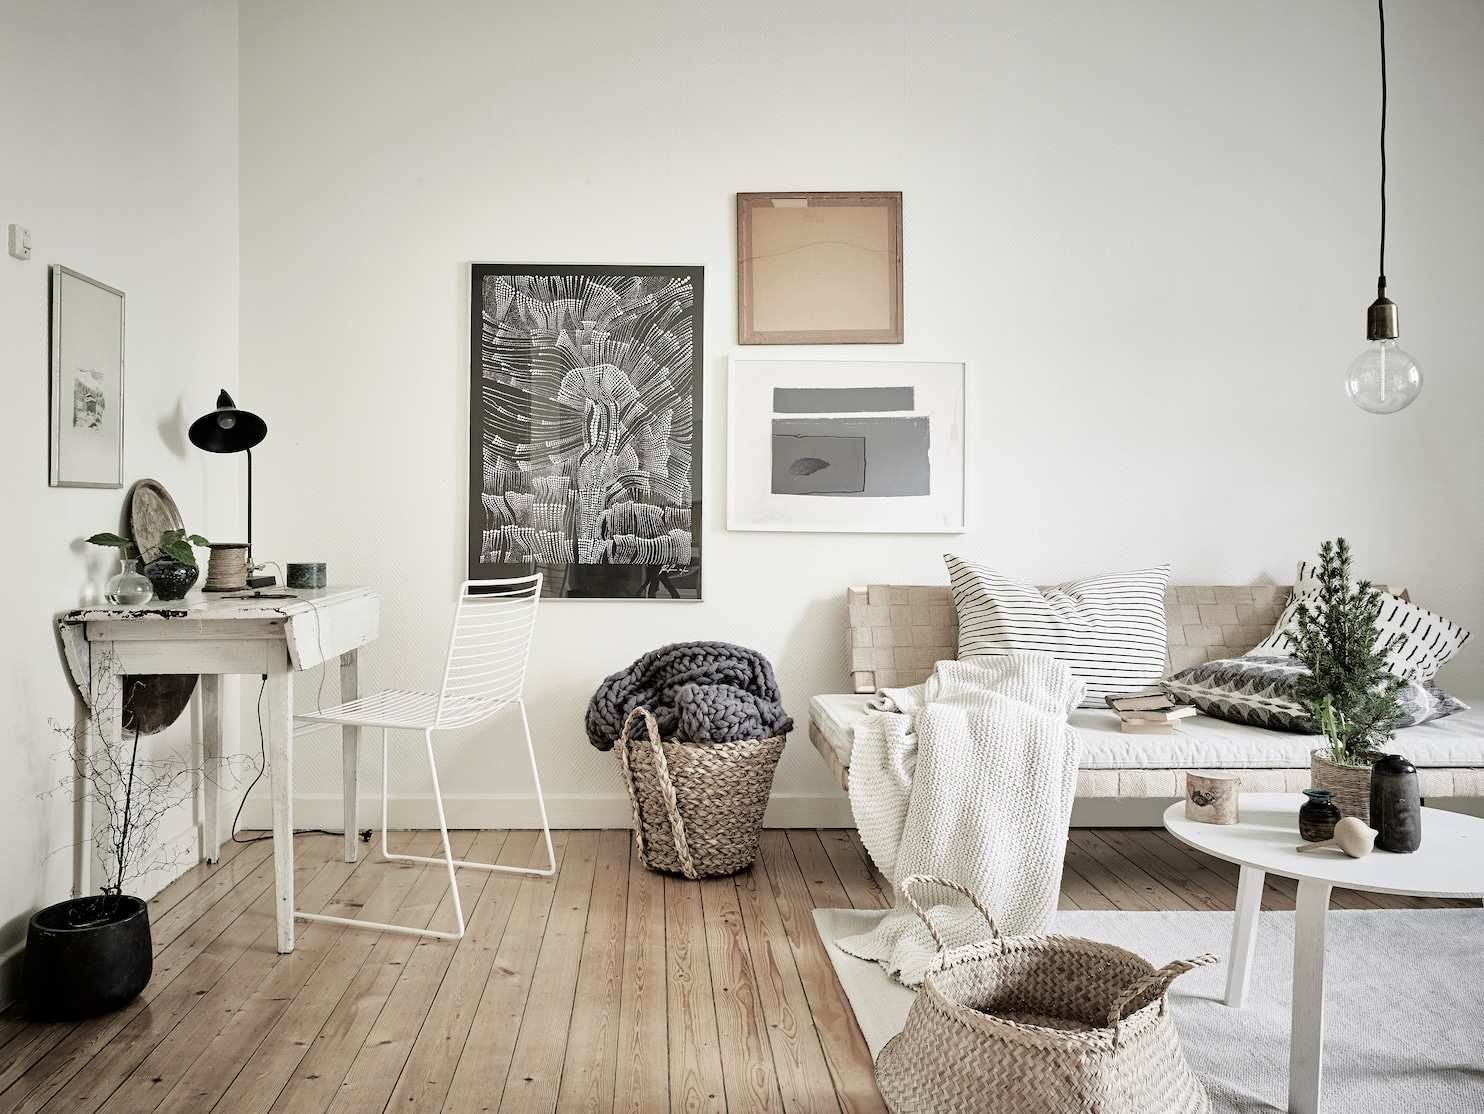 dining chair styles and names space saving desk scandinavian design is more than just ikea - the washington post